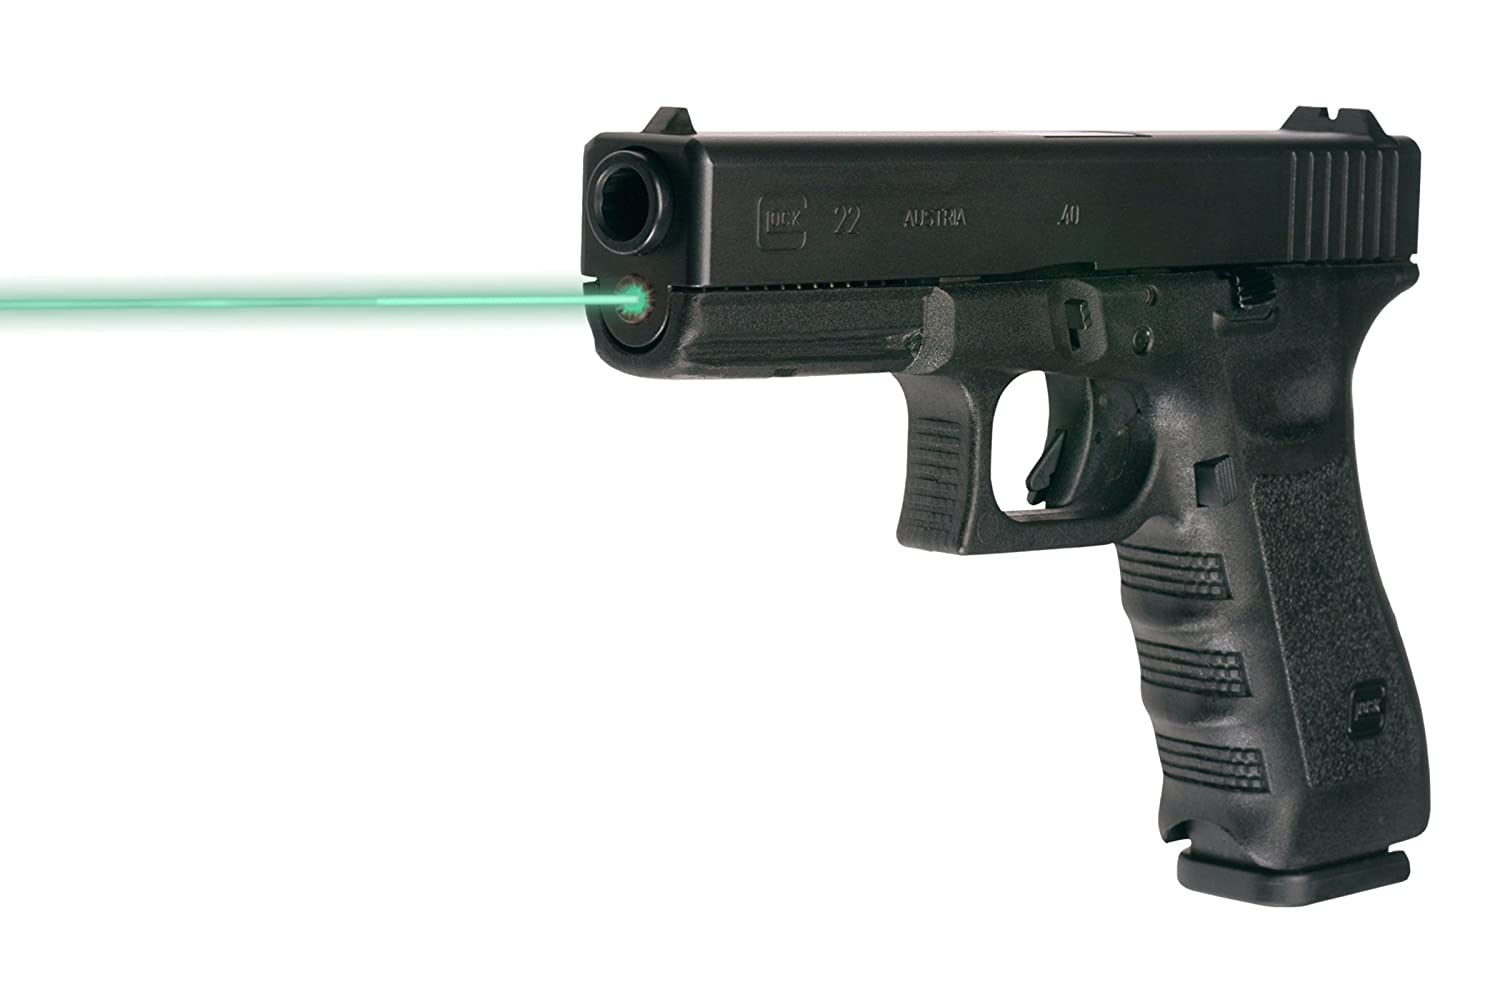 Guide Rod Laser Green For Use On Glock 17 22 31 37 Parts Take Down Pinterest Gen 1 3 Sports Outdoors